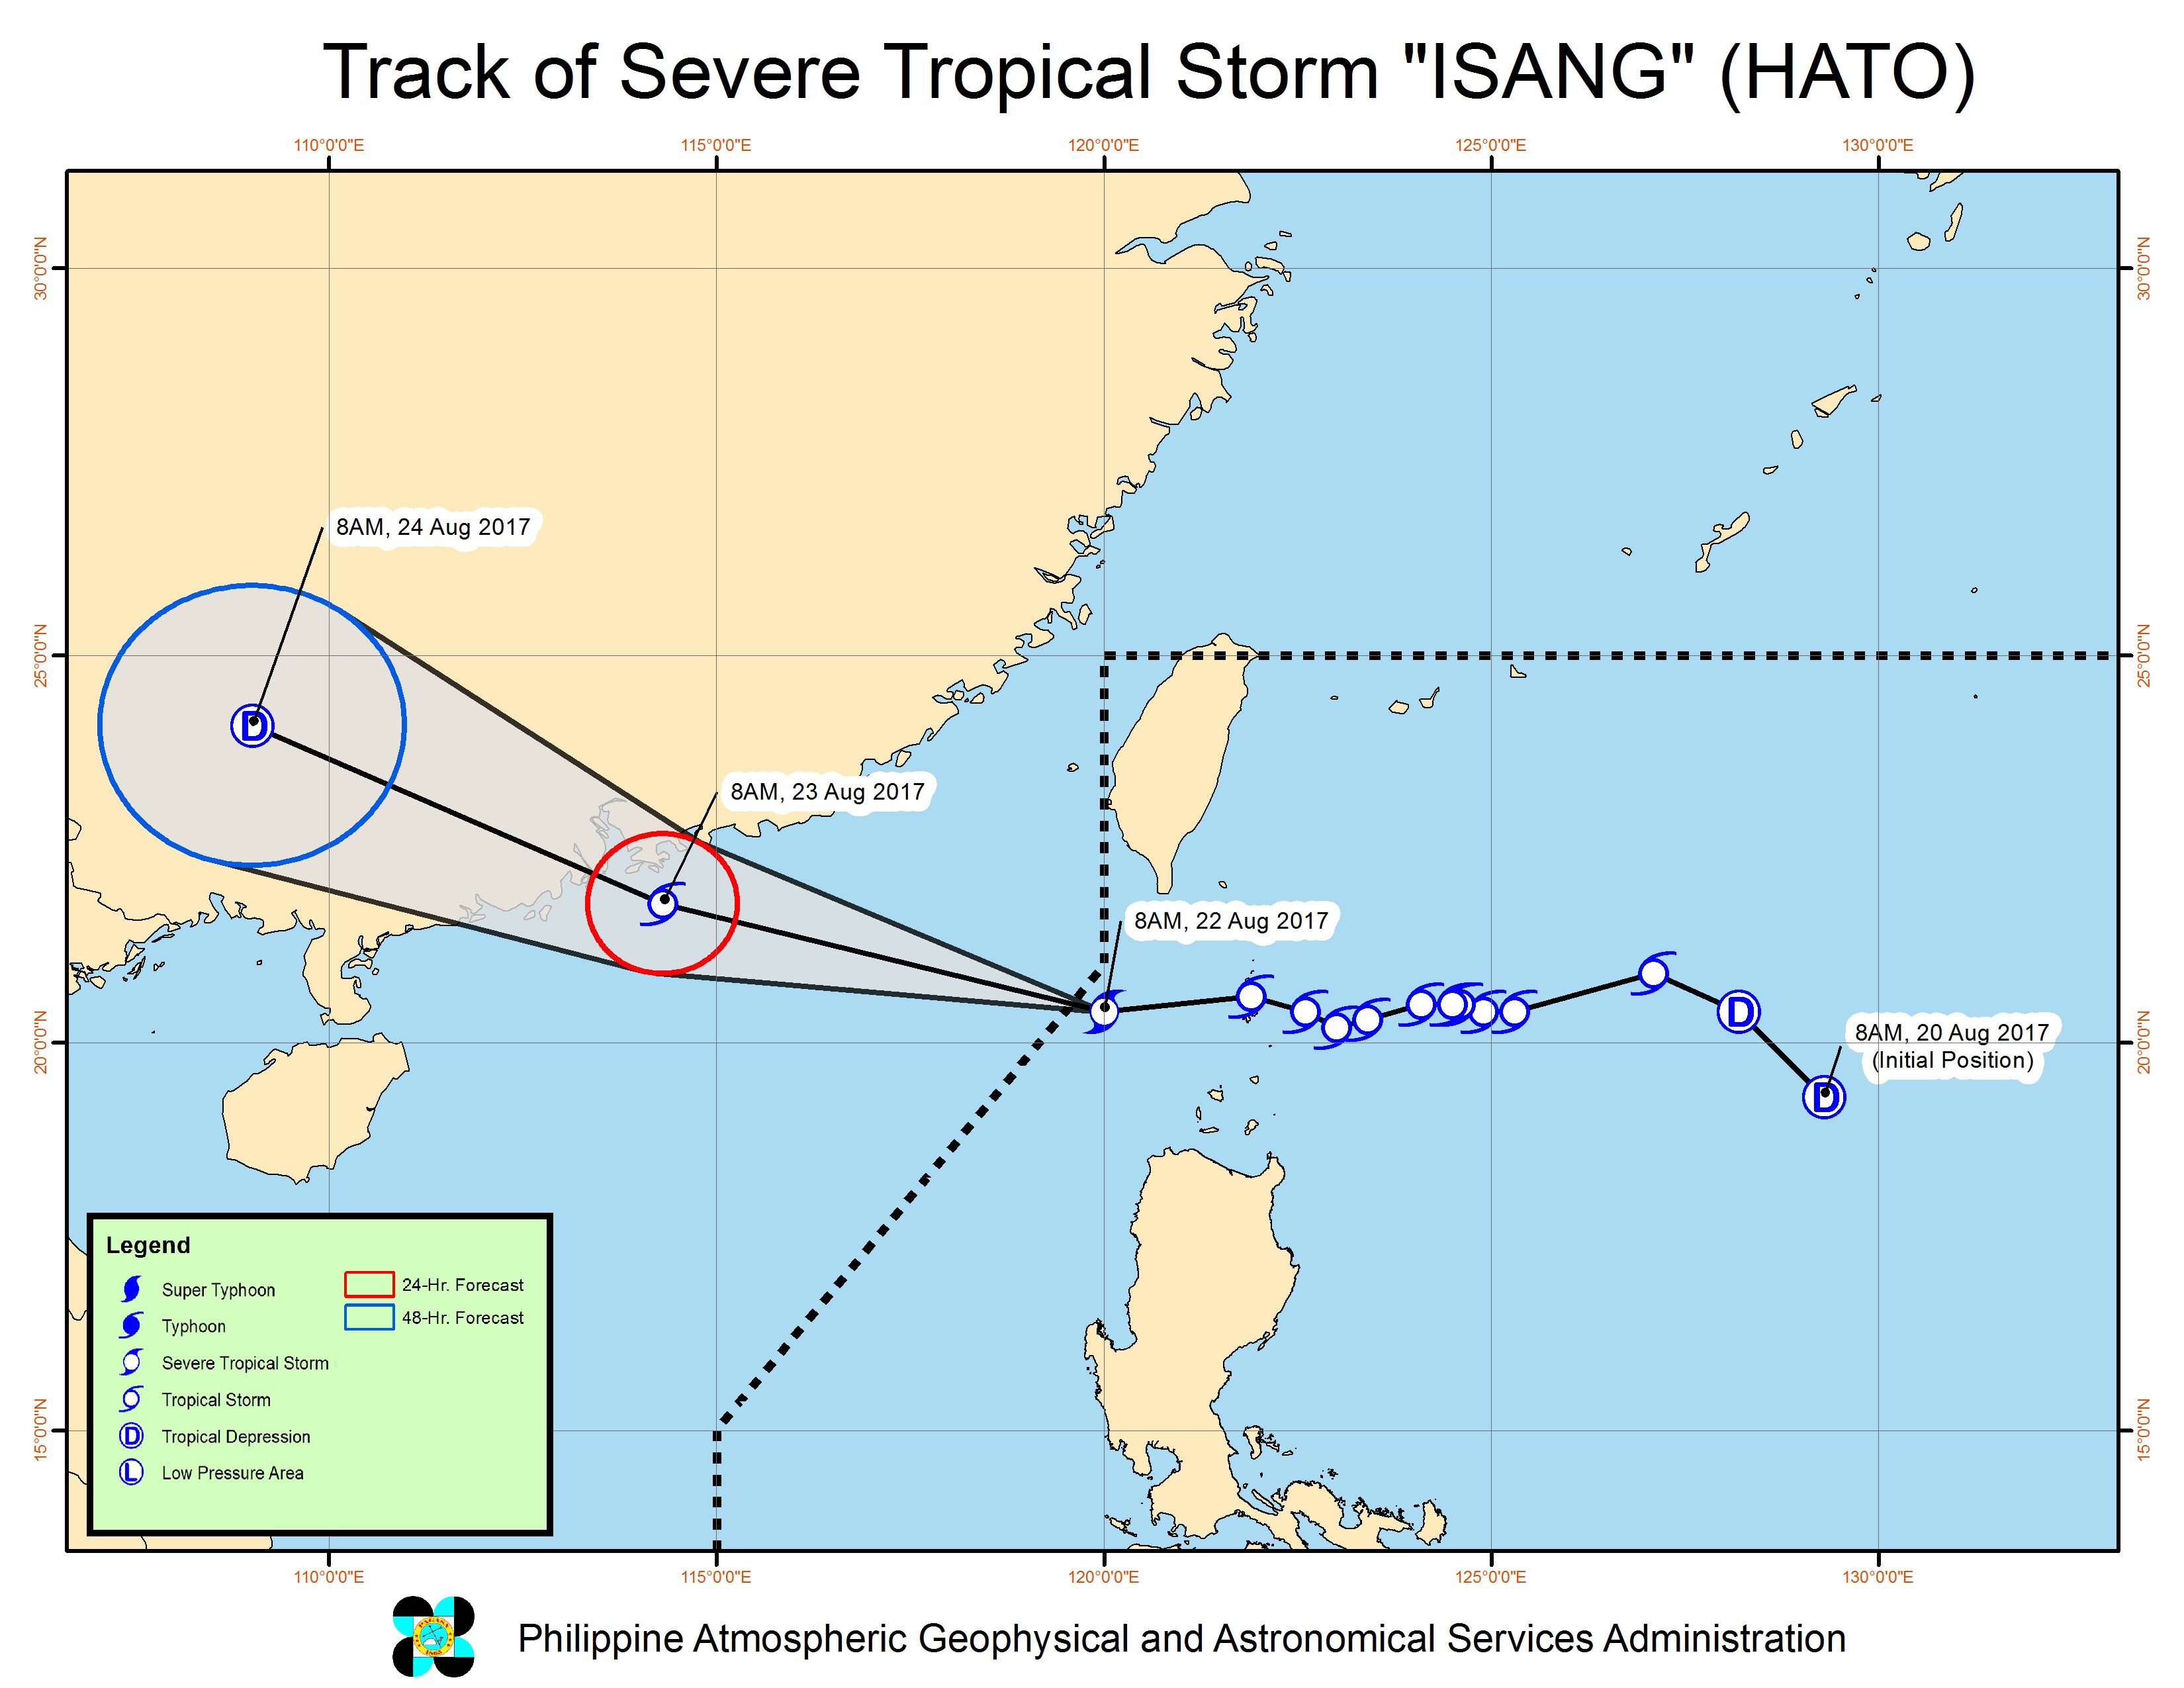 Forecast track of Severe Tropical Storm Isang as of August 22, 11 am. Image courtesy of PAGASA